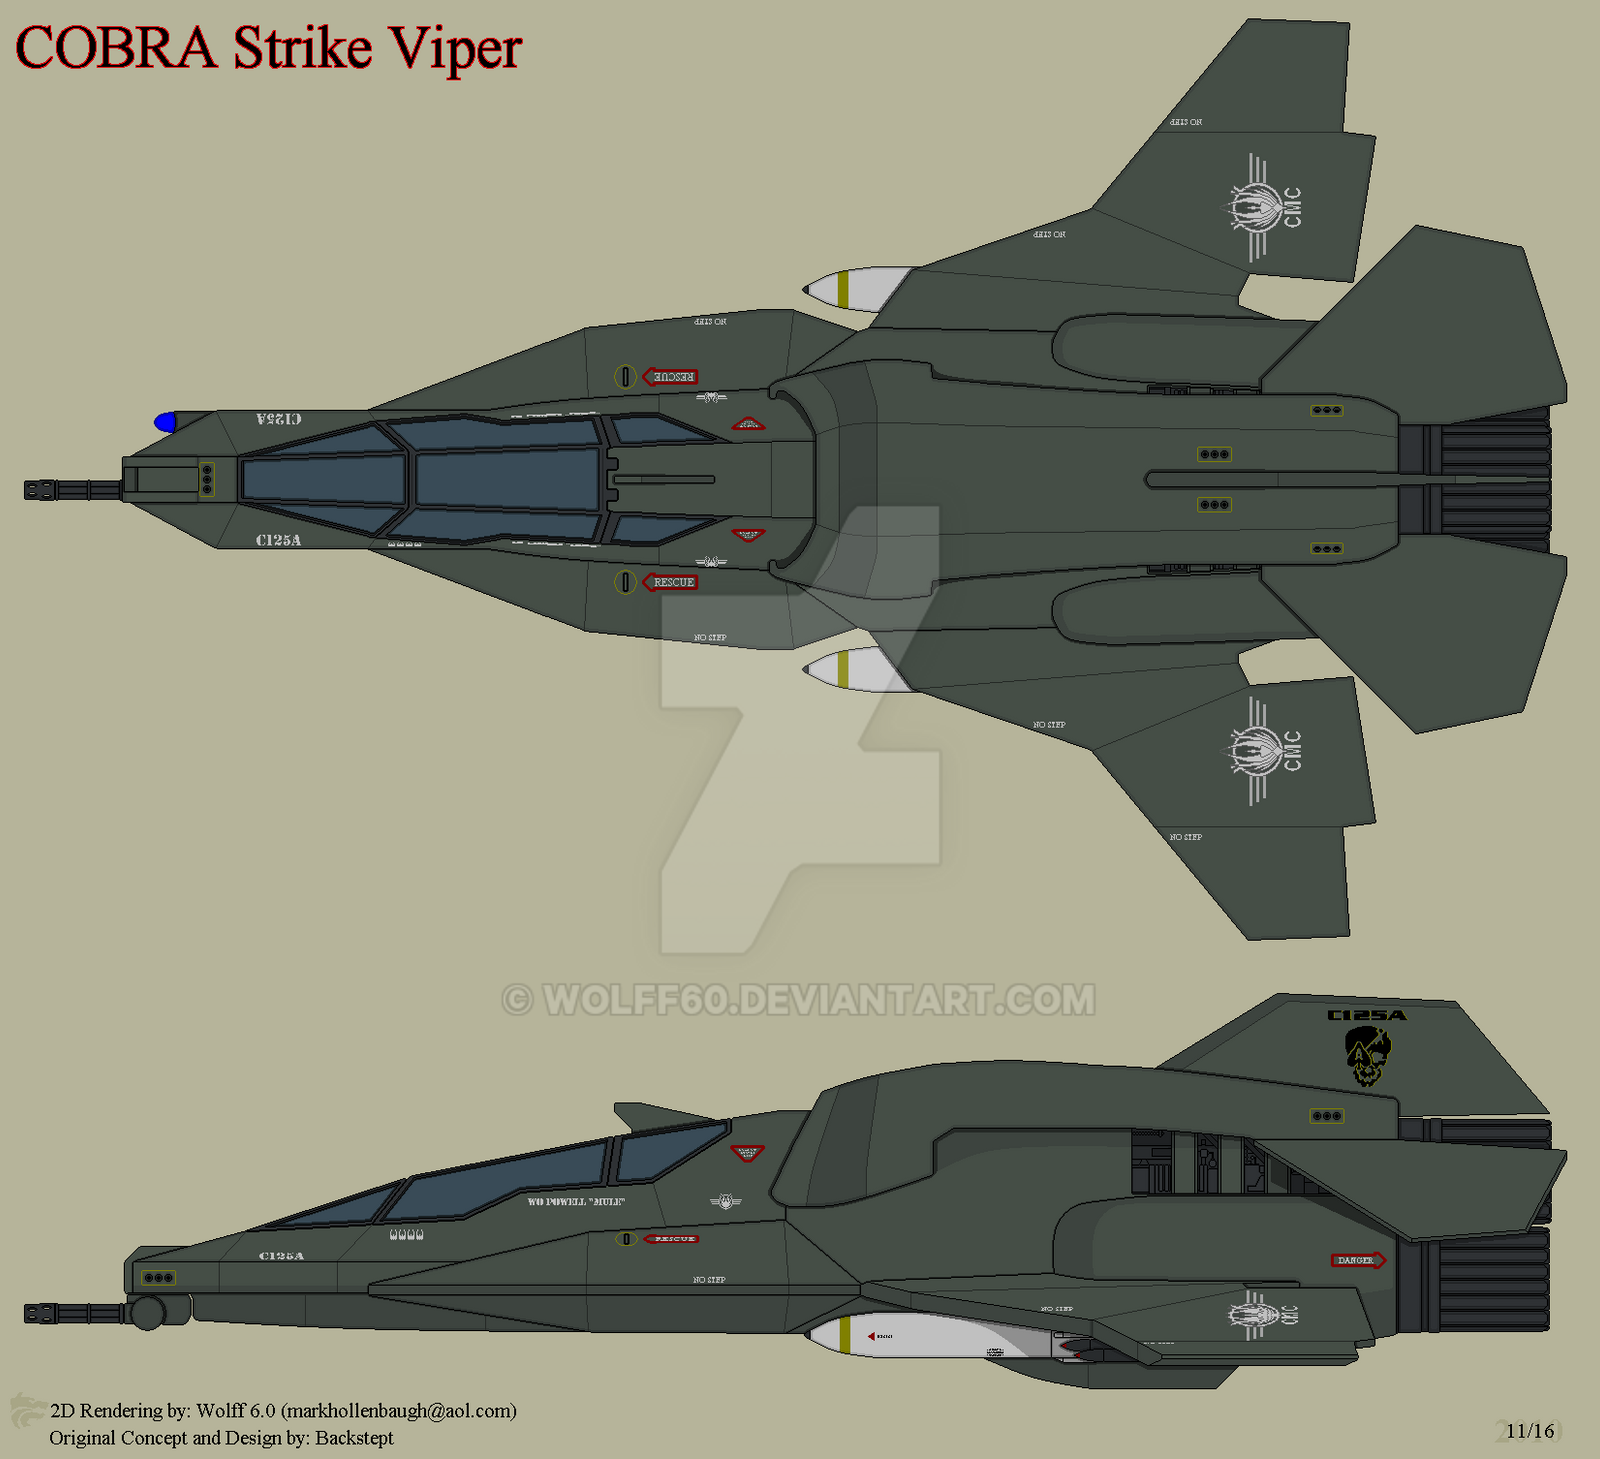 Cobra Strike Viper By Wolff60 On Deviantart